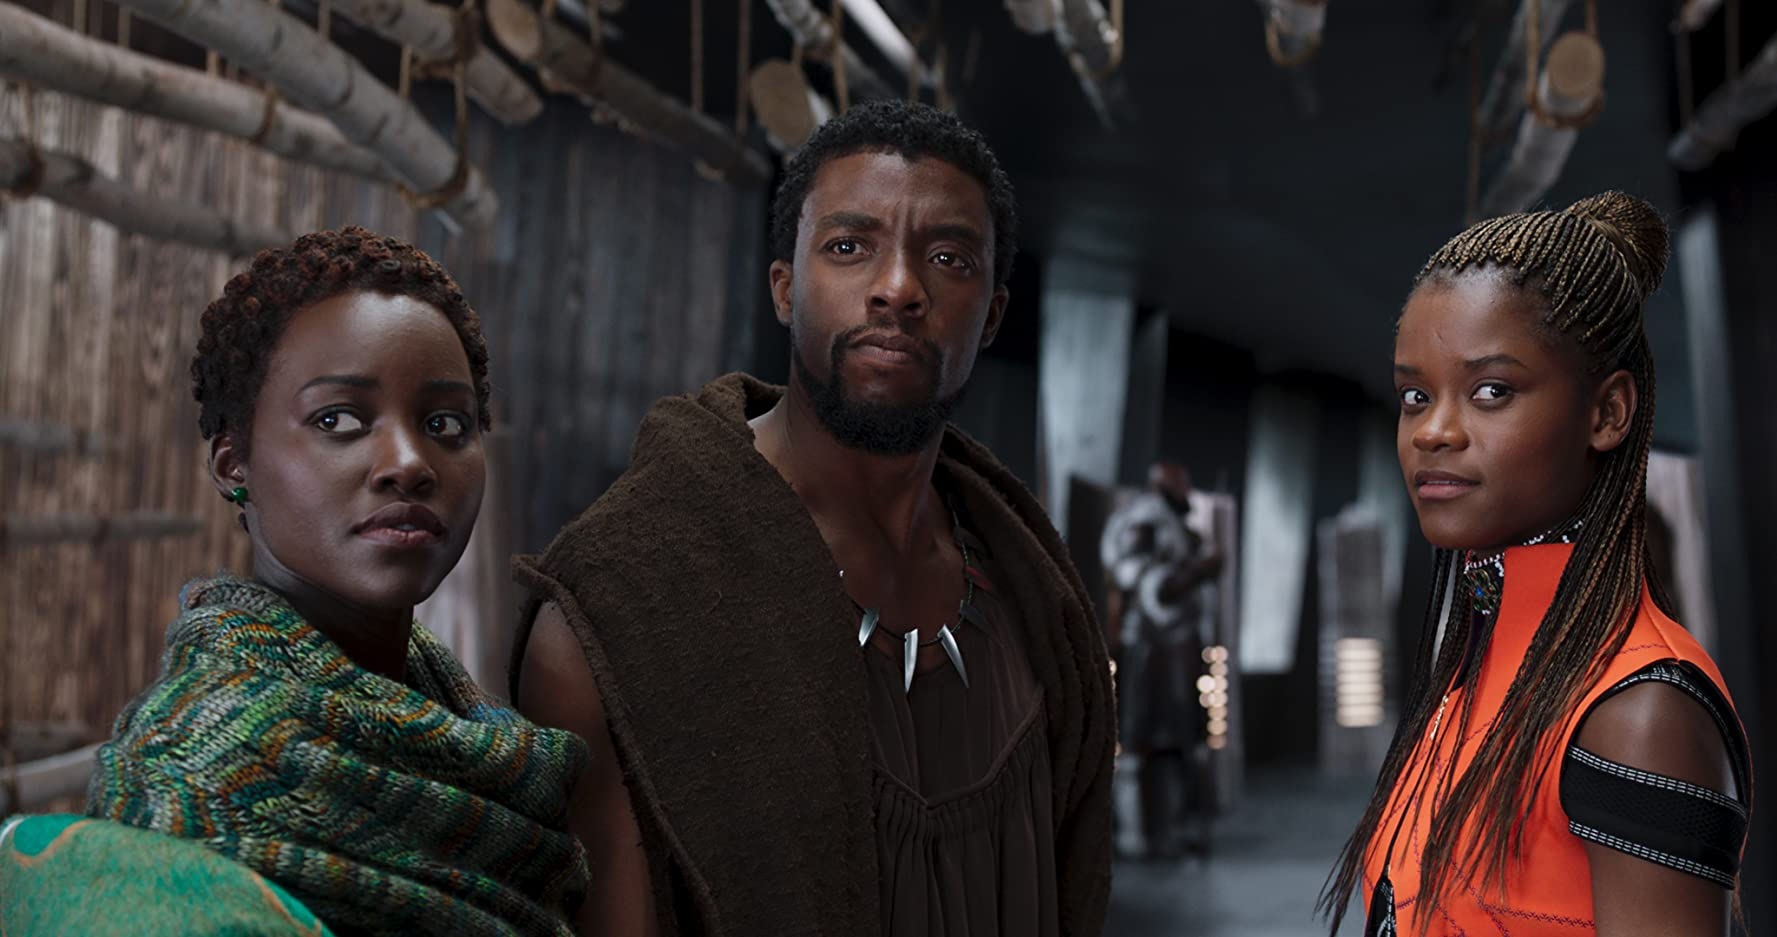 Chadwick Boseman, Lupita Nyong'o, and Letitia Wright / Black Panther / Marvel Entertainment & Walt Disney Studios. © 2018. All rights reserved.